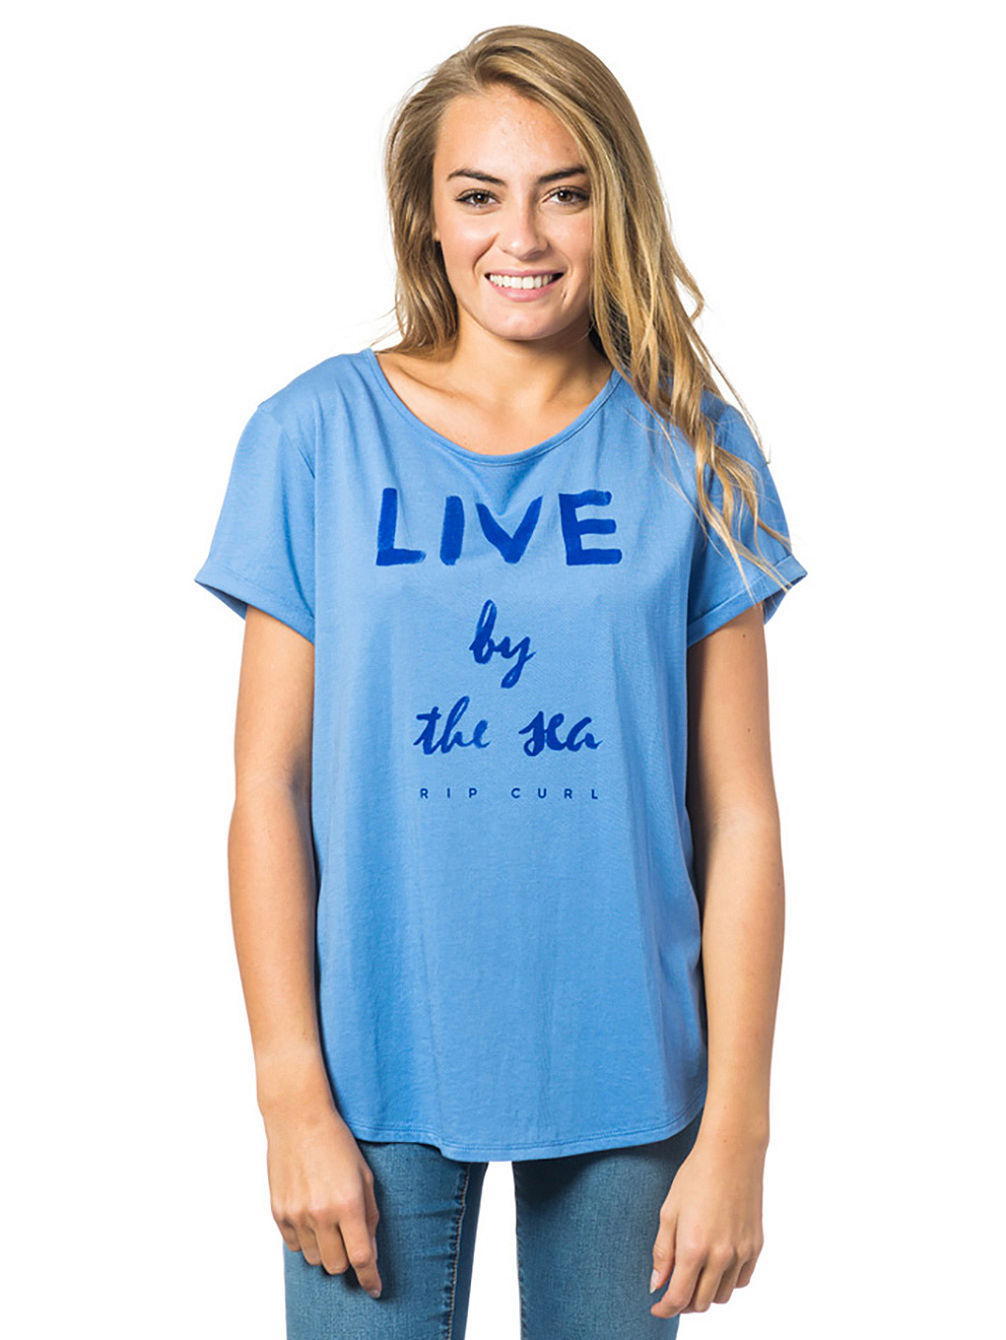 rip-curl-live-by-the-sea-t-shirt